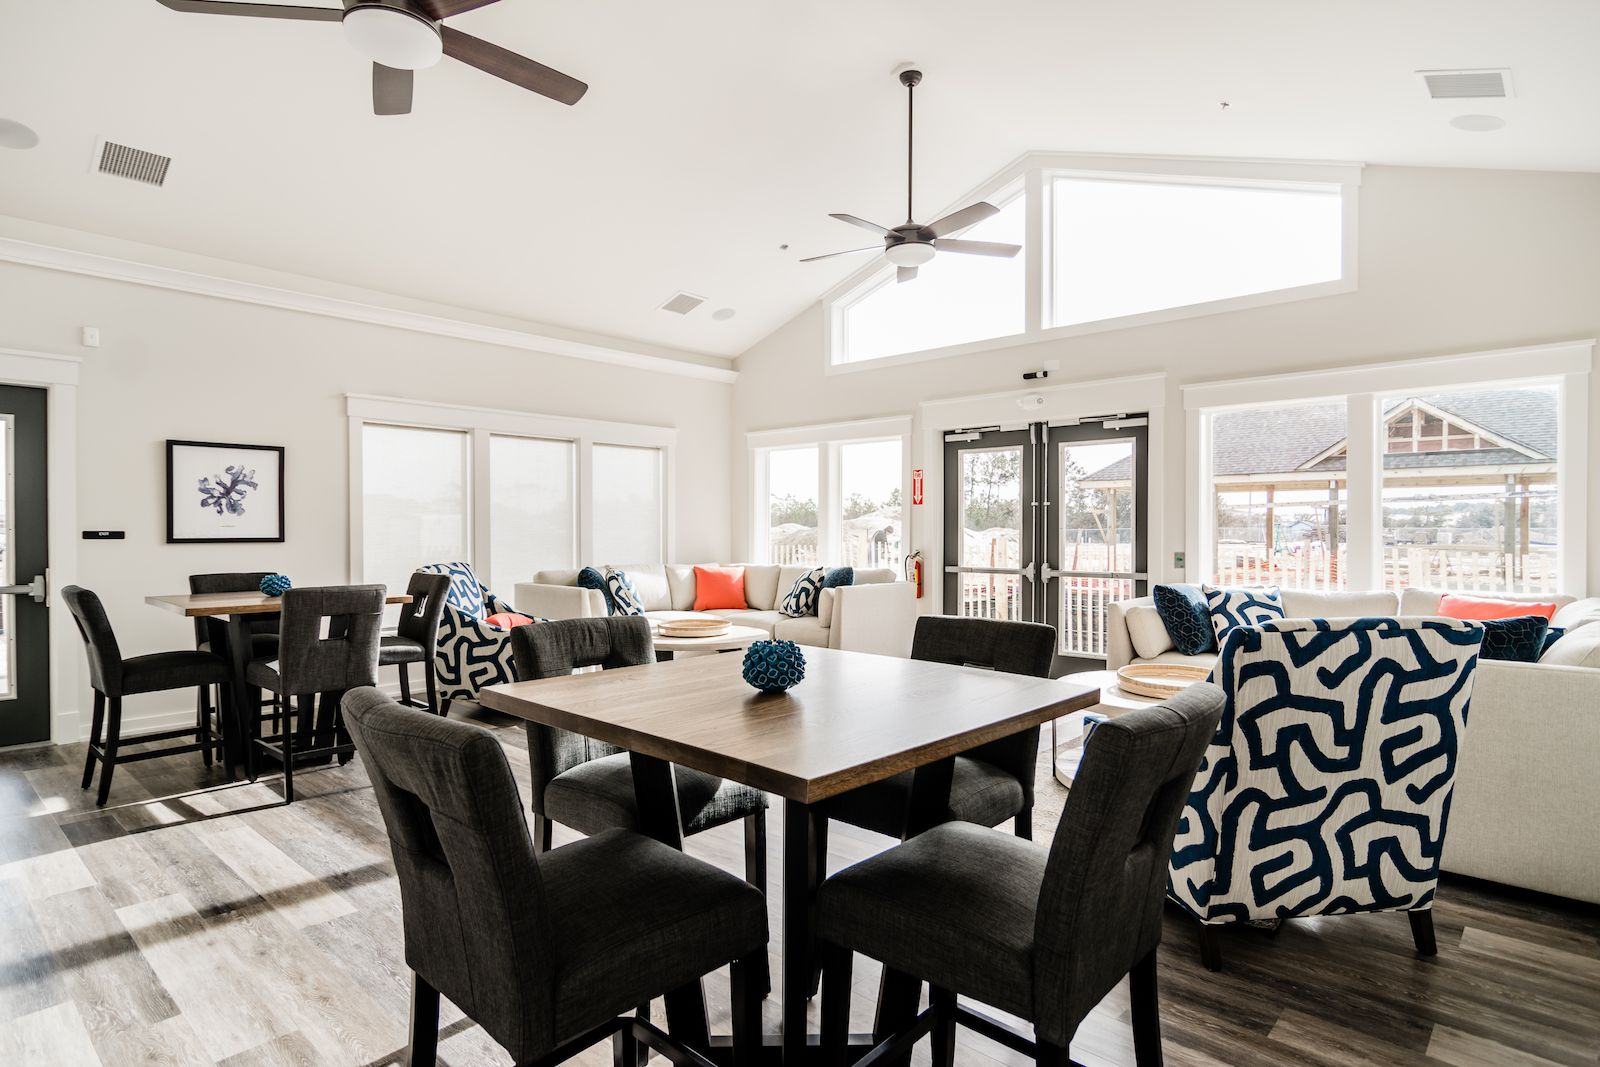 Upscale Ceiling Fan Brand New Clubhouse With Upscale Coastal Furnishings Vaulted